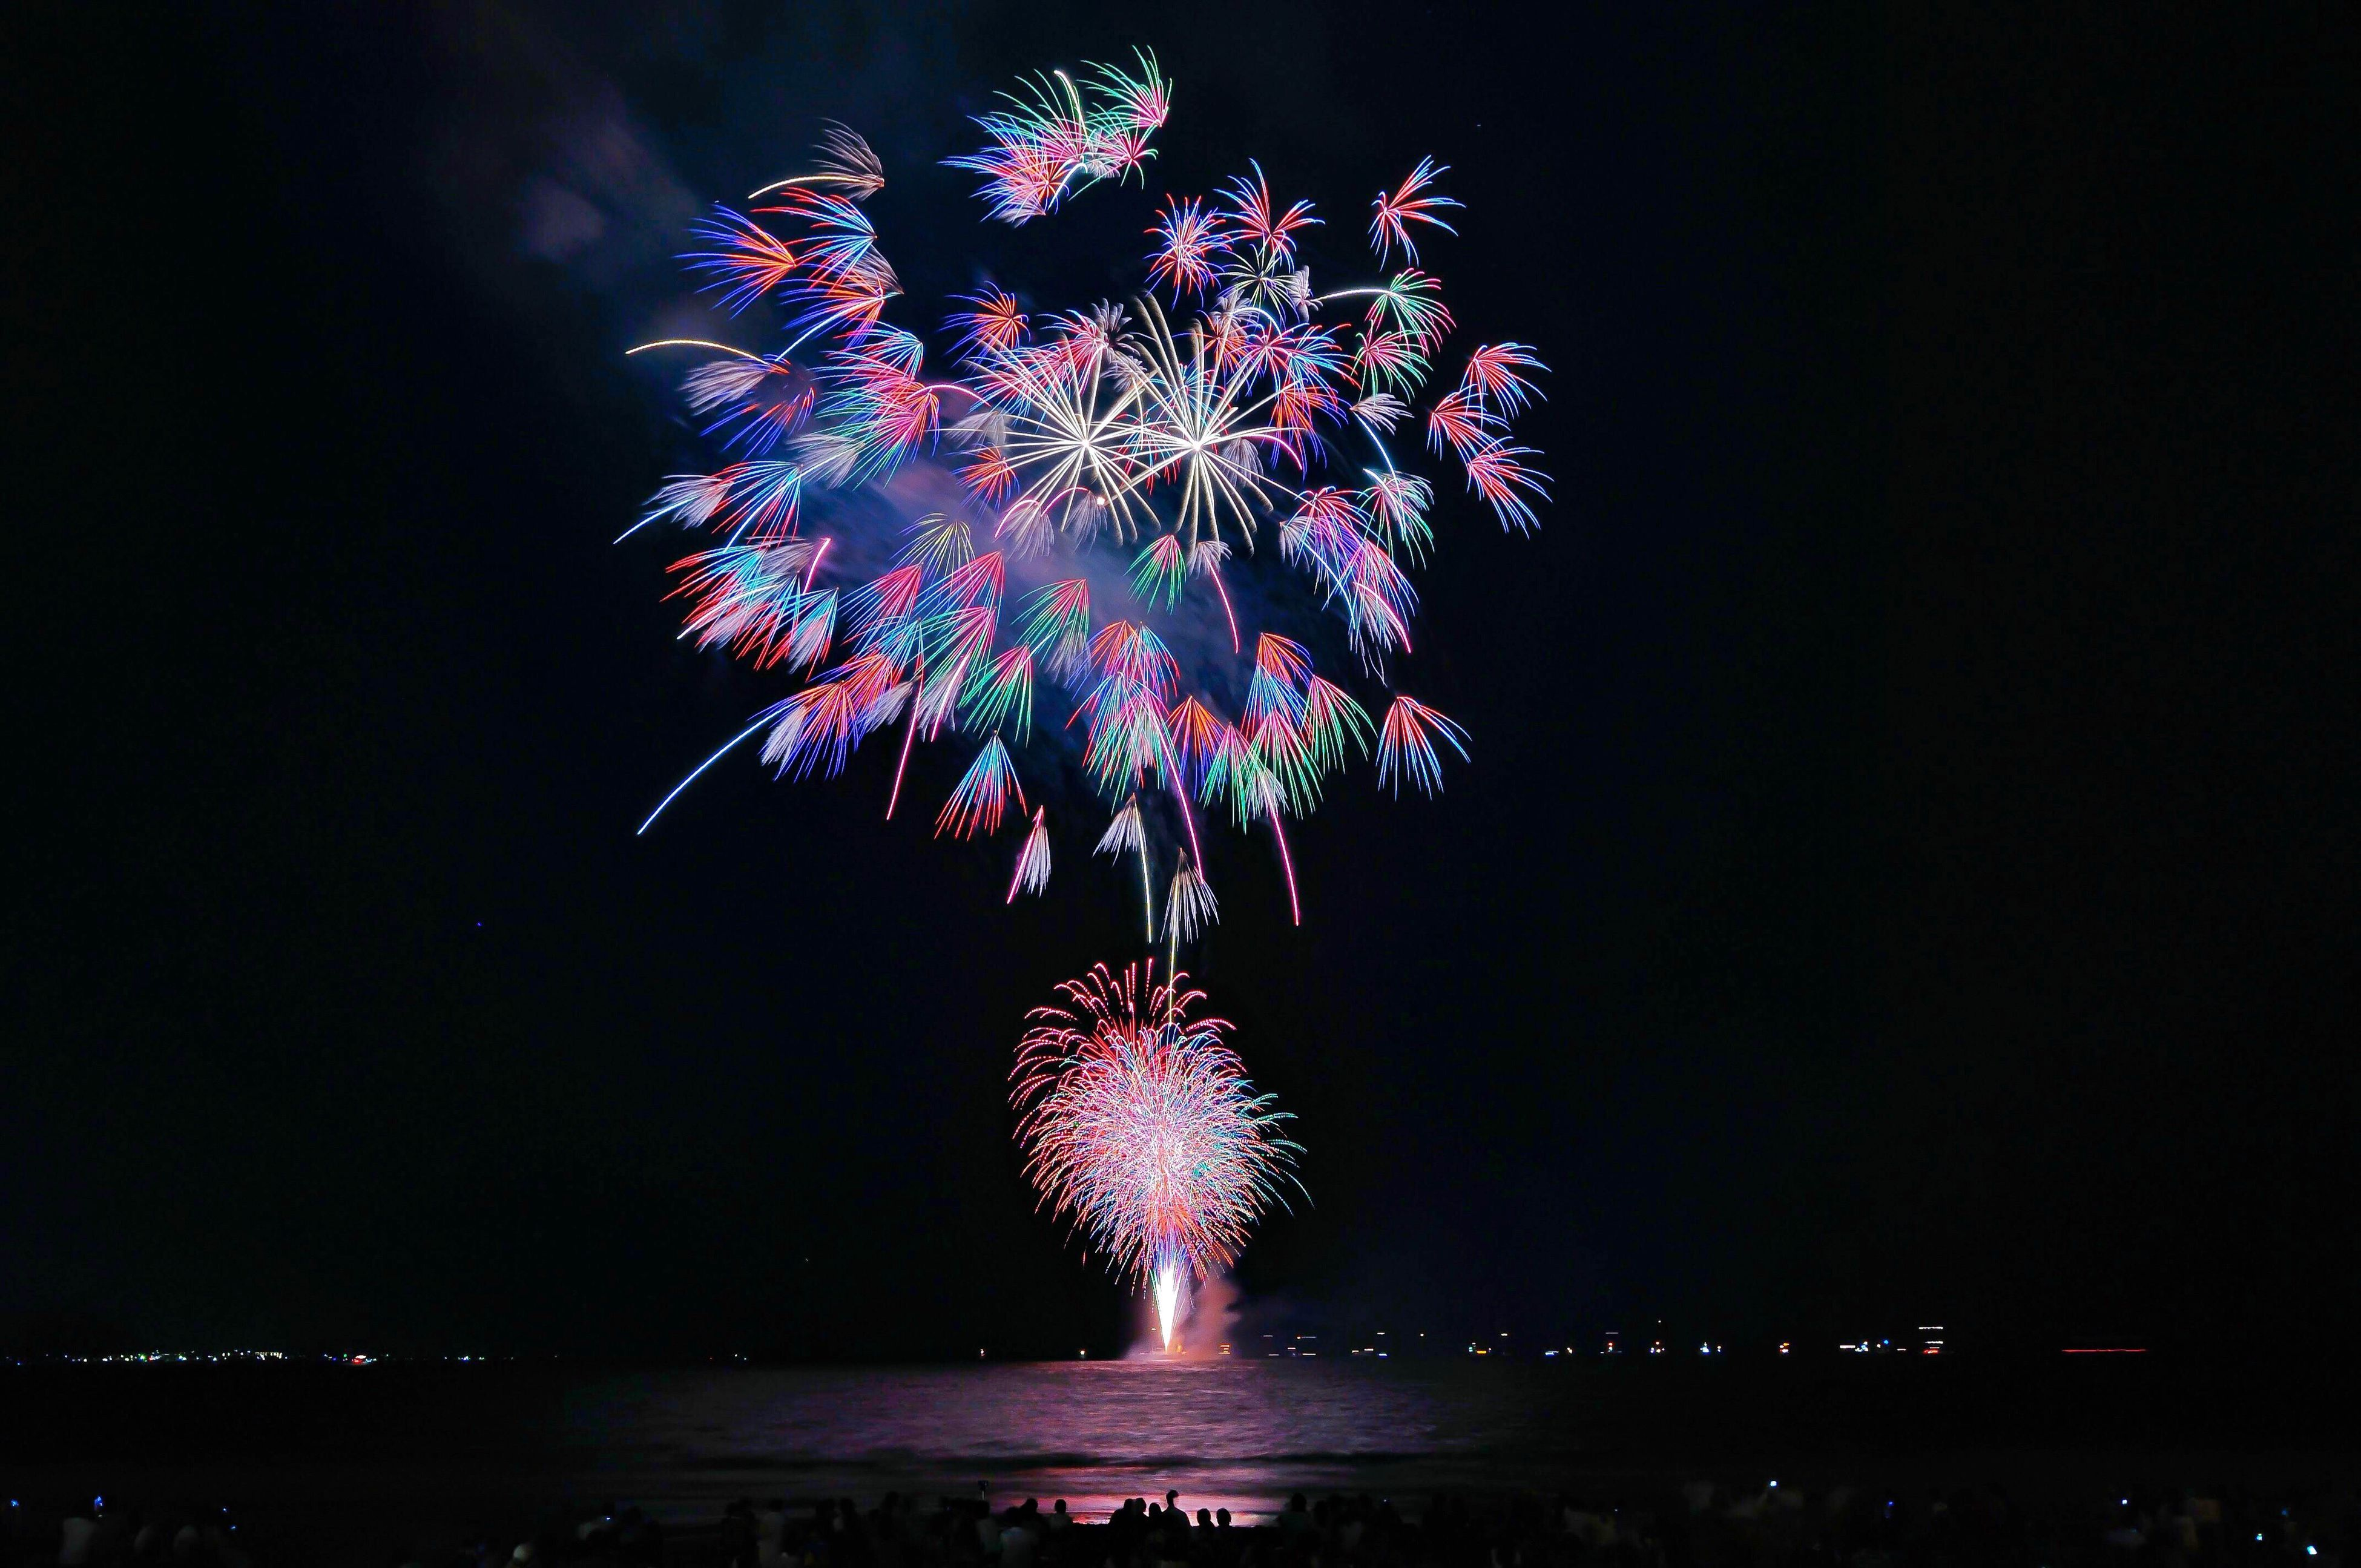 EyeEm Selects Night Firework Display Celebration Exploding Firework - Man Made Object Long Exposure Event Low Angle View Blurred Motion Arts Culture And Entertainment Illuminated Multi Colored Motion Firework Sky Outdoors No People Water Beach 由比ヶ浜 鎌倉 Waterfront 千輪菊